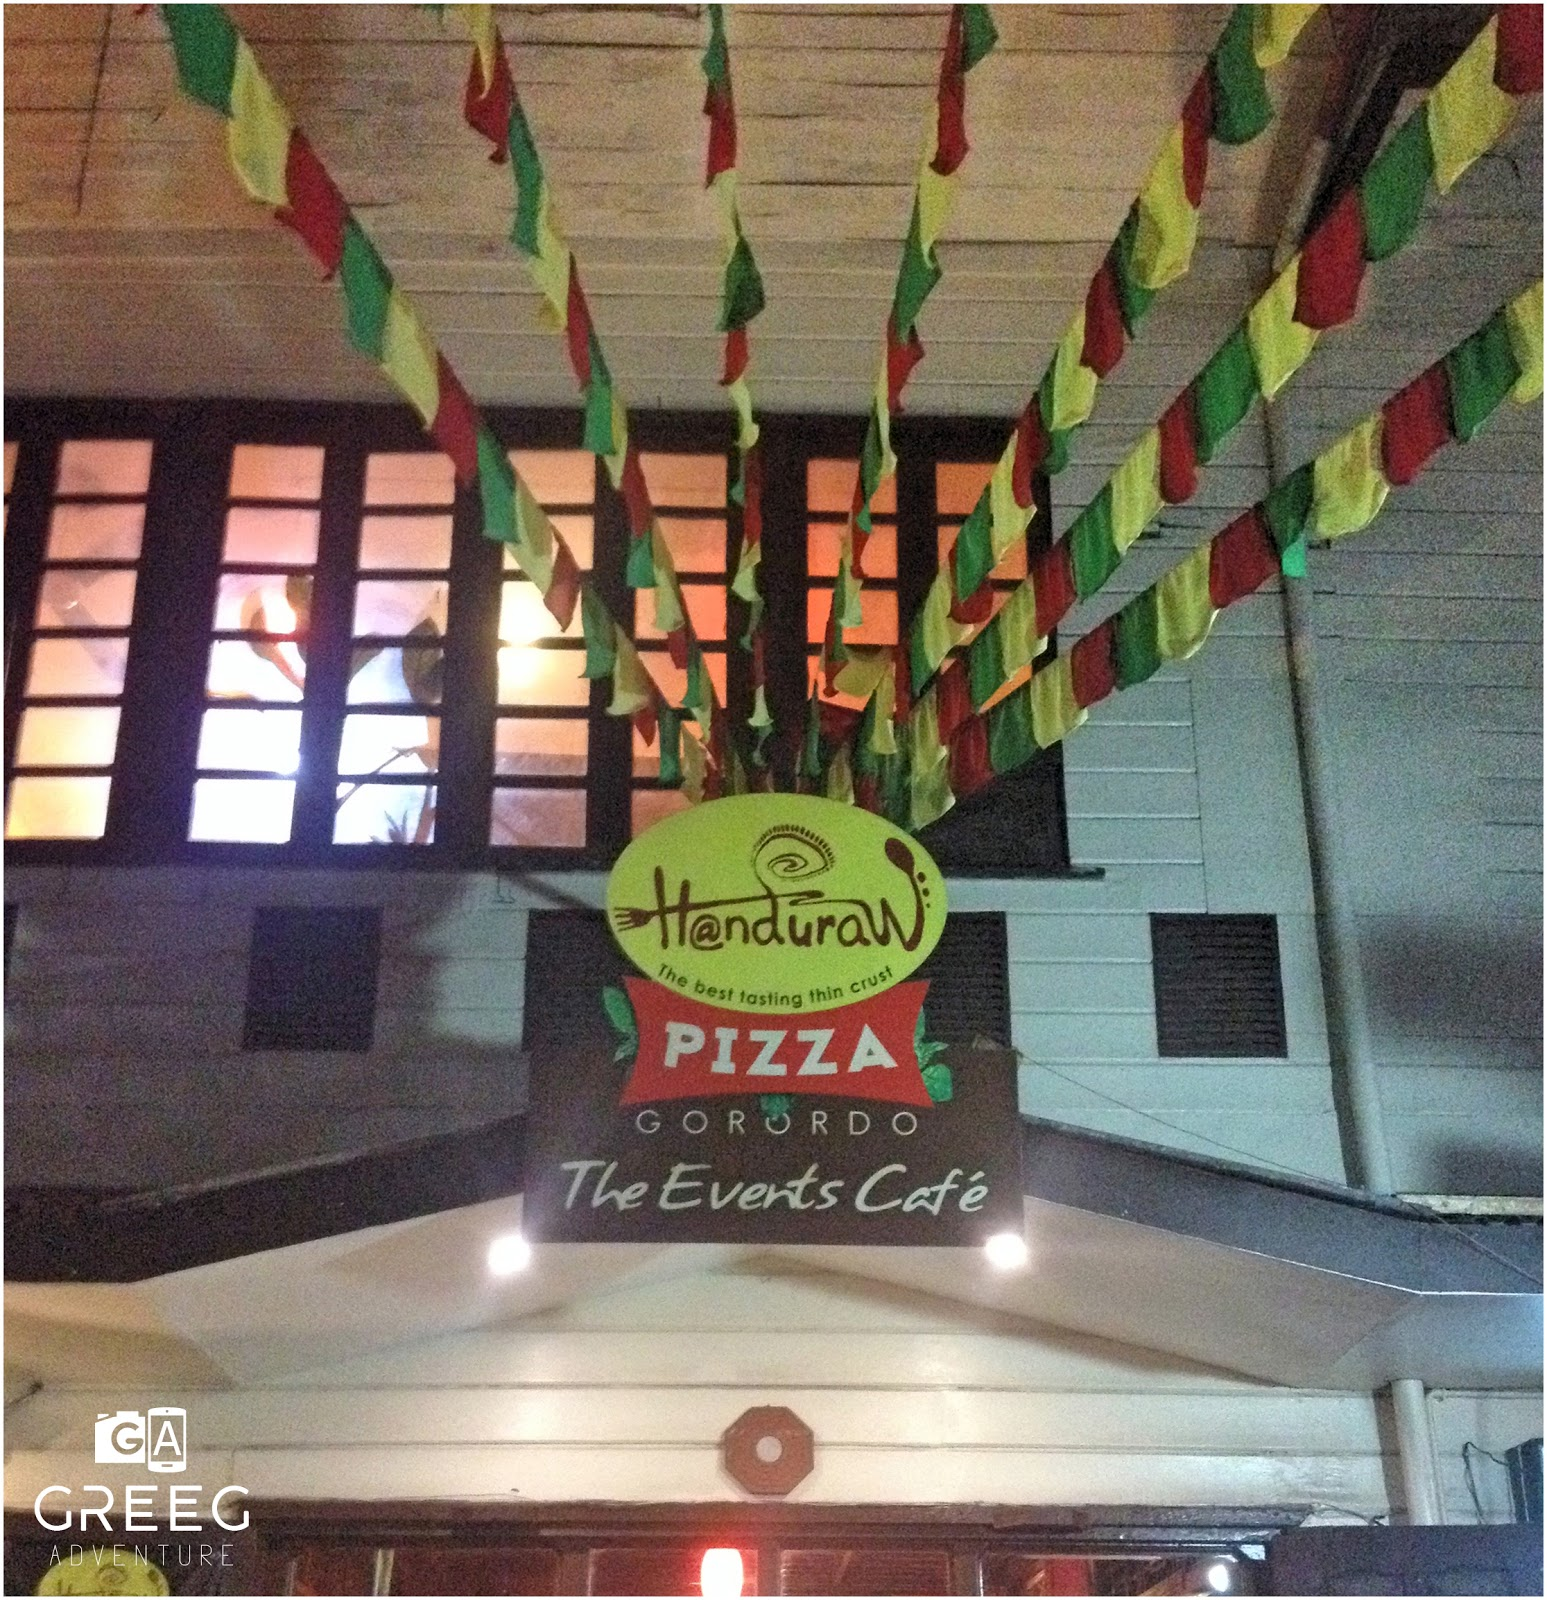 another good place to hang out with family and friends here in cebu is handuraw pizza there are band schedules every night that will keep the night alive